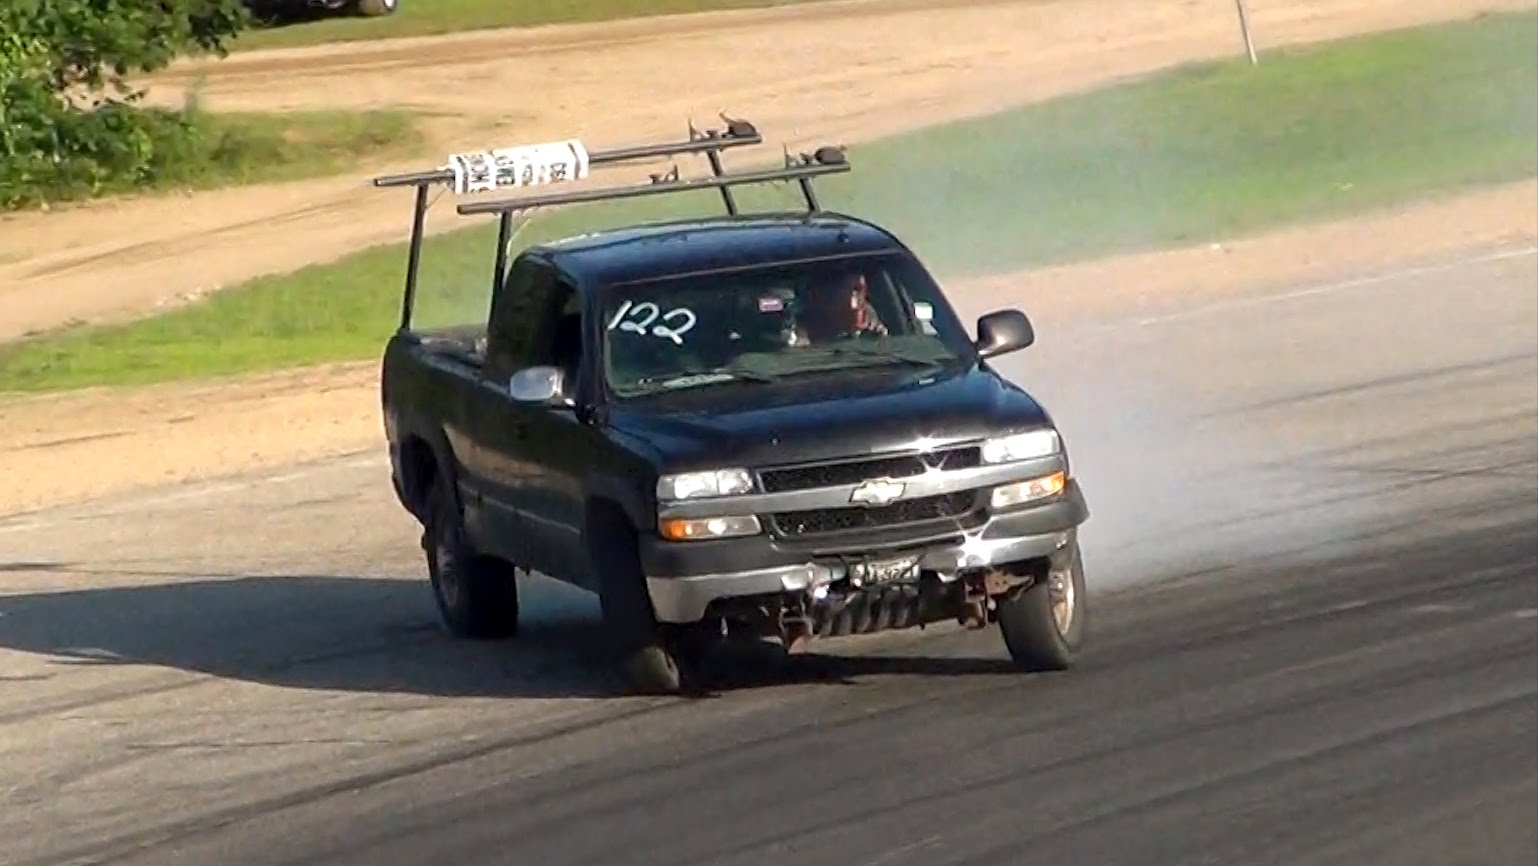 Truck chevy 2500hd trucks : Chevy Silverado 2500hd 6.0 Work Truck Drifting - big - NO Car NO ...